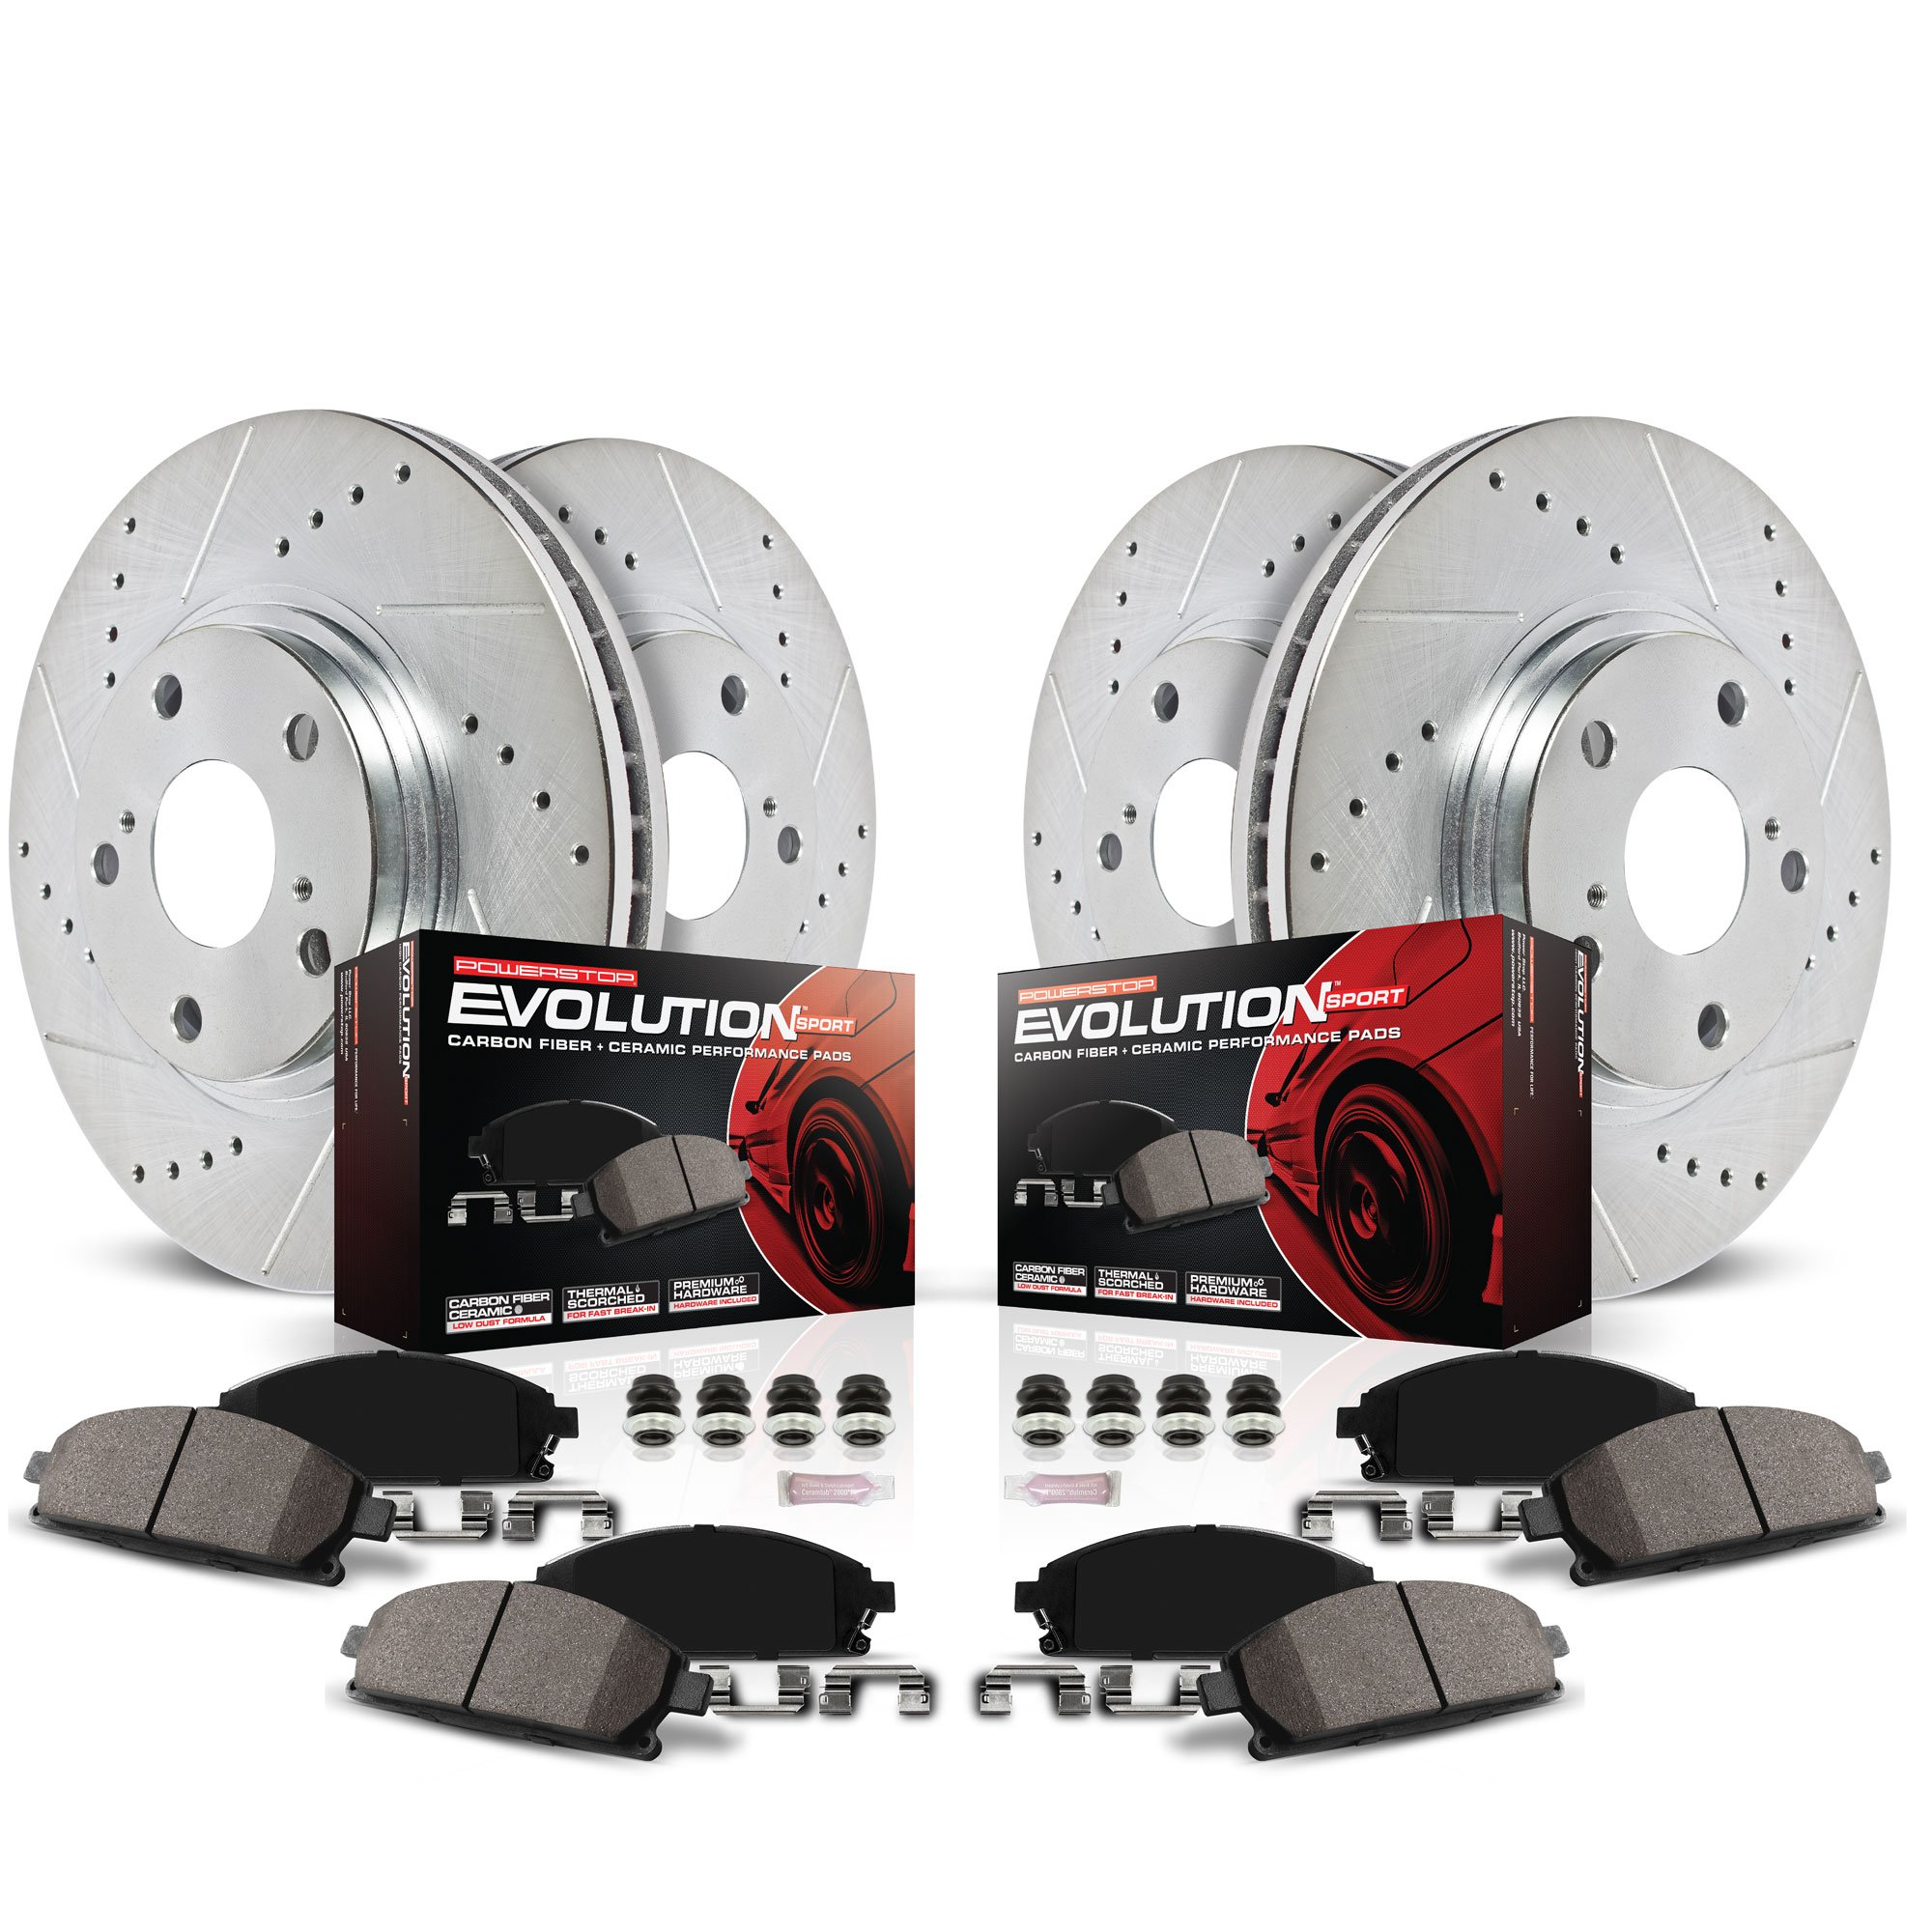 Power Stop K2745 Front and Rear Z23 Evolution Brake Kit with Drilled/Slotted Rotors and Ceramic Brake Pads by Power Stop